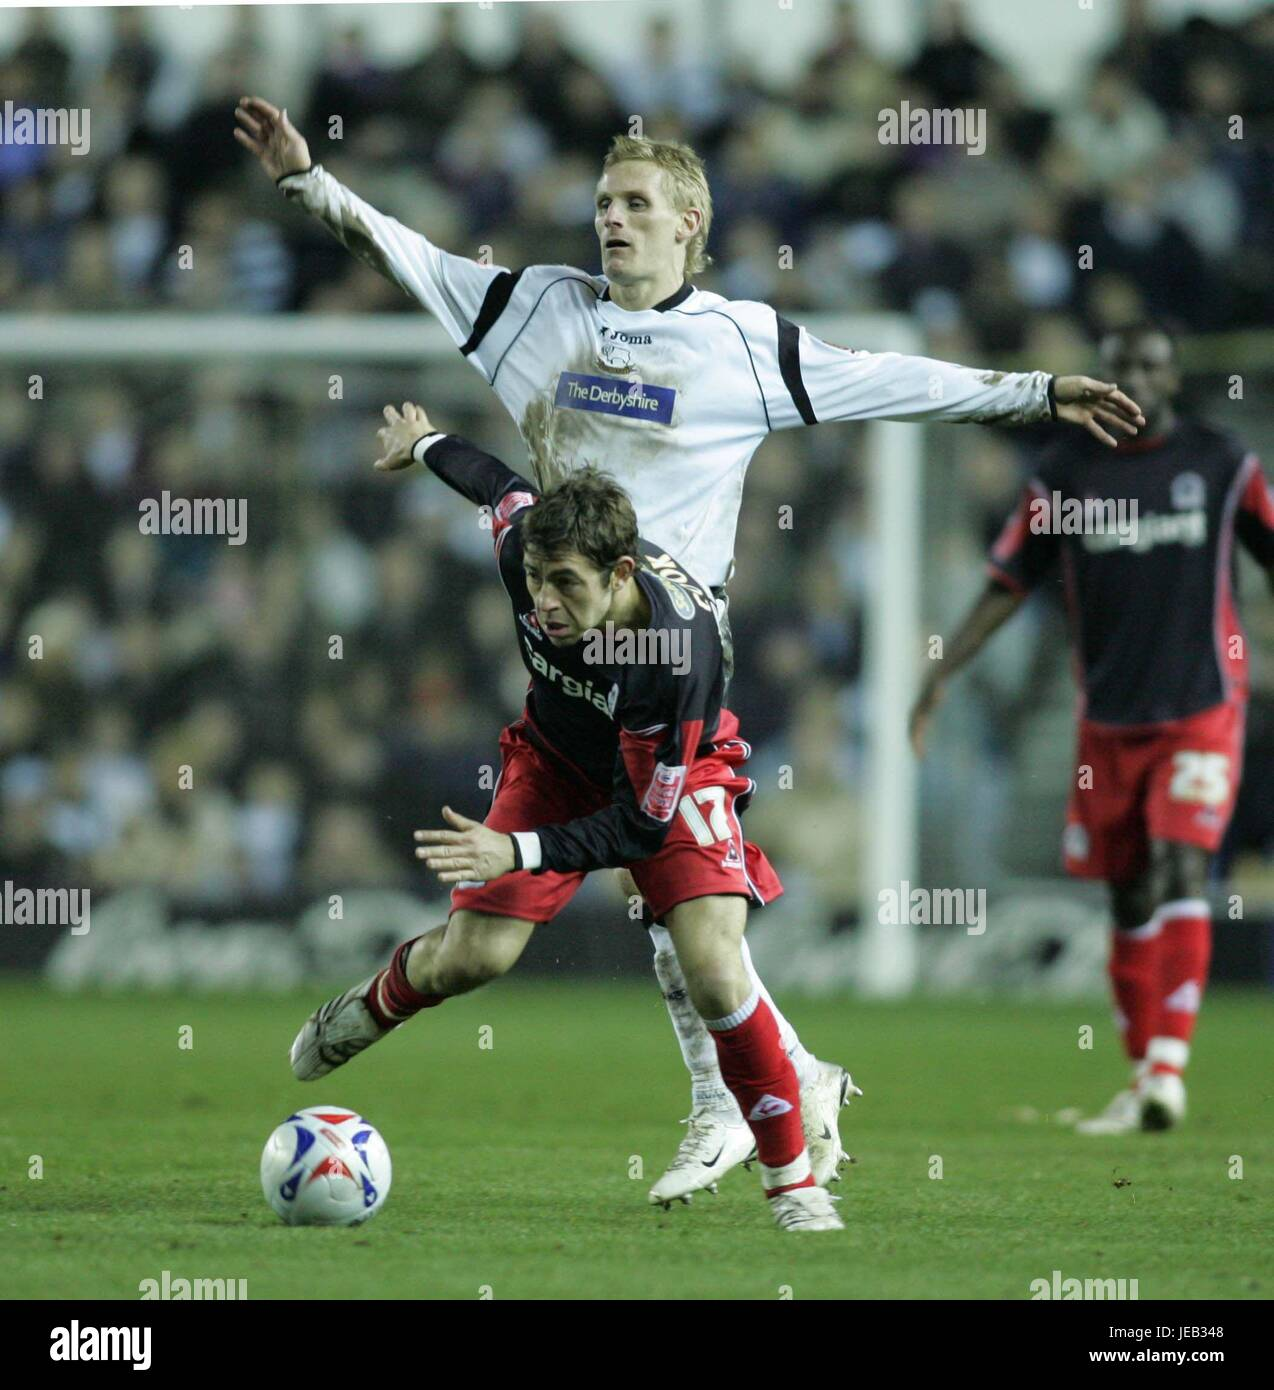 COOK AND TEALE DERBY COUNTY V Q.P.R. PRIDE PARK DERBY GREAT BRITAIN 13 March 2007 - Stock Image